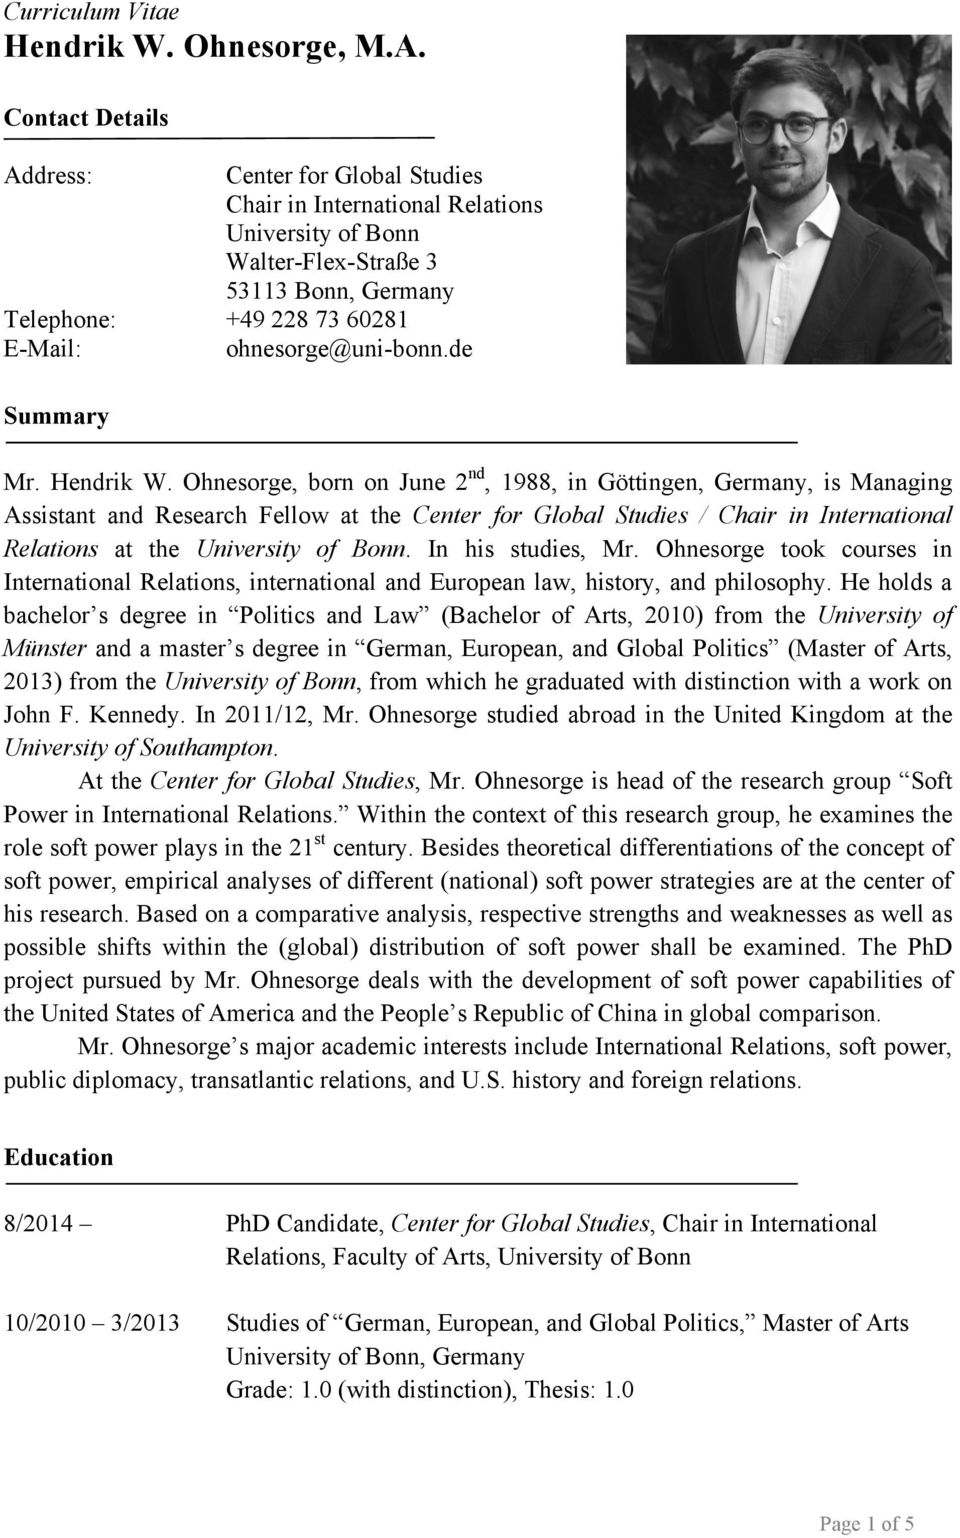 Hendrik W. Ohnesorge, born on June 2nd, 1988, in Göttingen, Germany, is Managing Assistant and Research Fellow at the Center for Global Studies / Chair in International Relations at the.